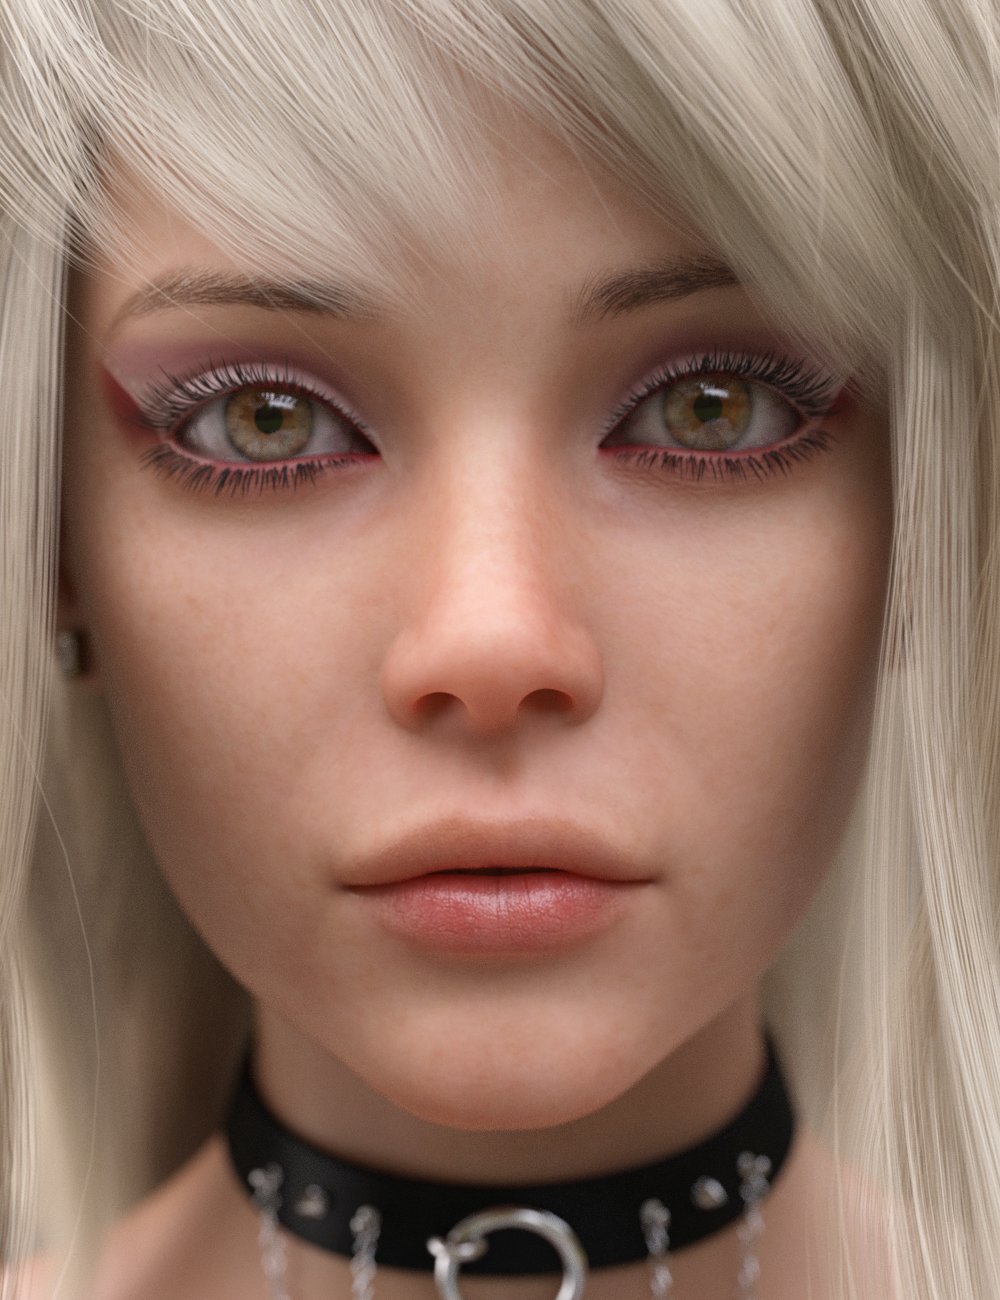 Araminta HD for Genesis 8.1 Female by: iSourceTextures, 3D Models by Daz 3D